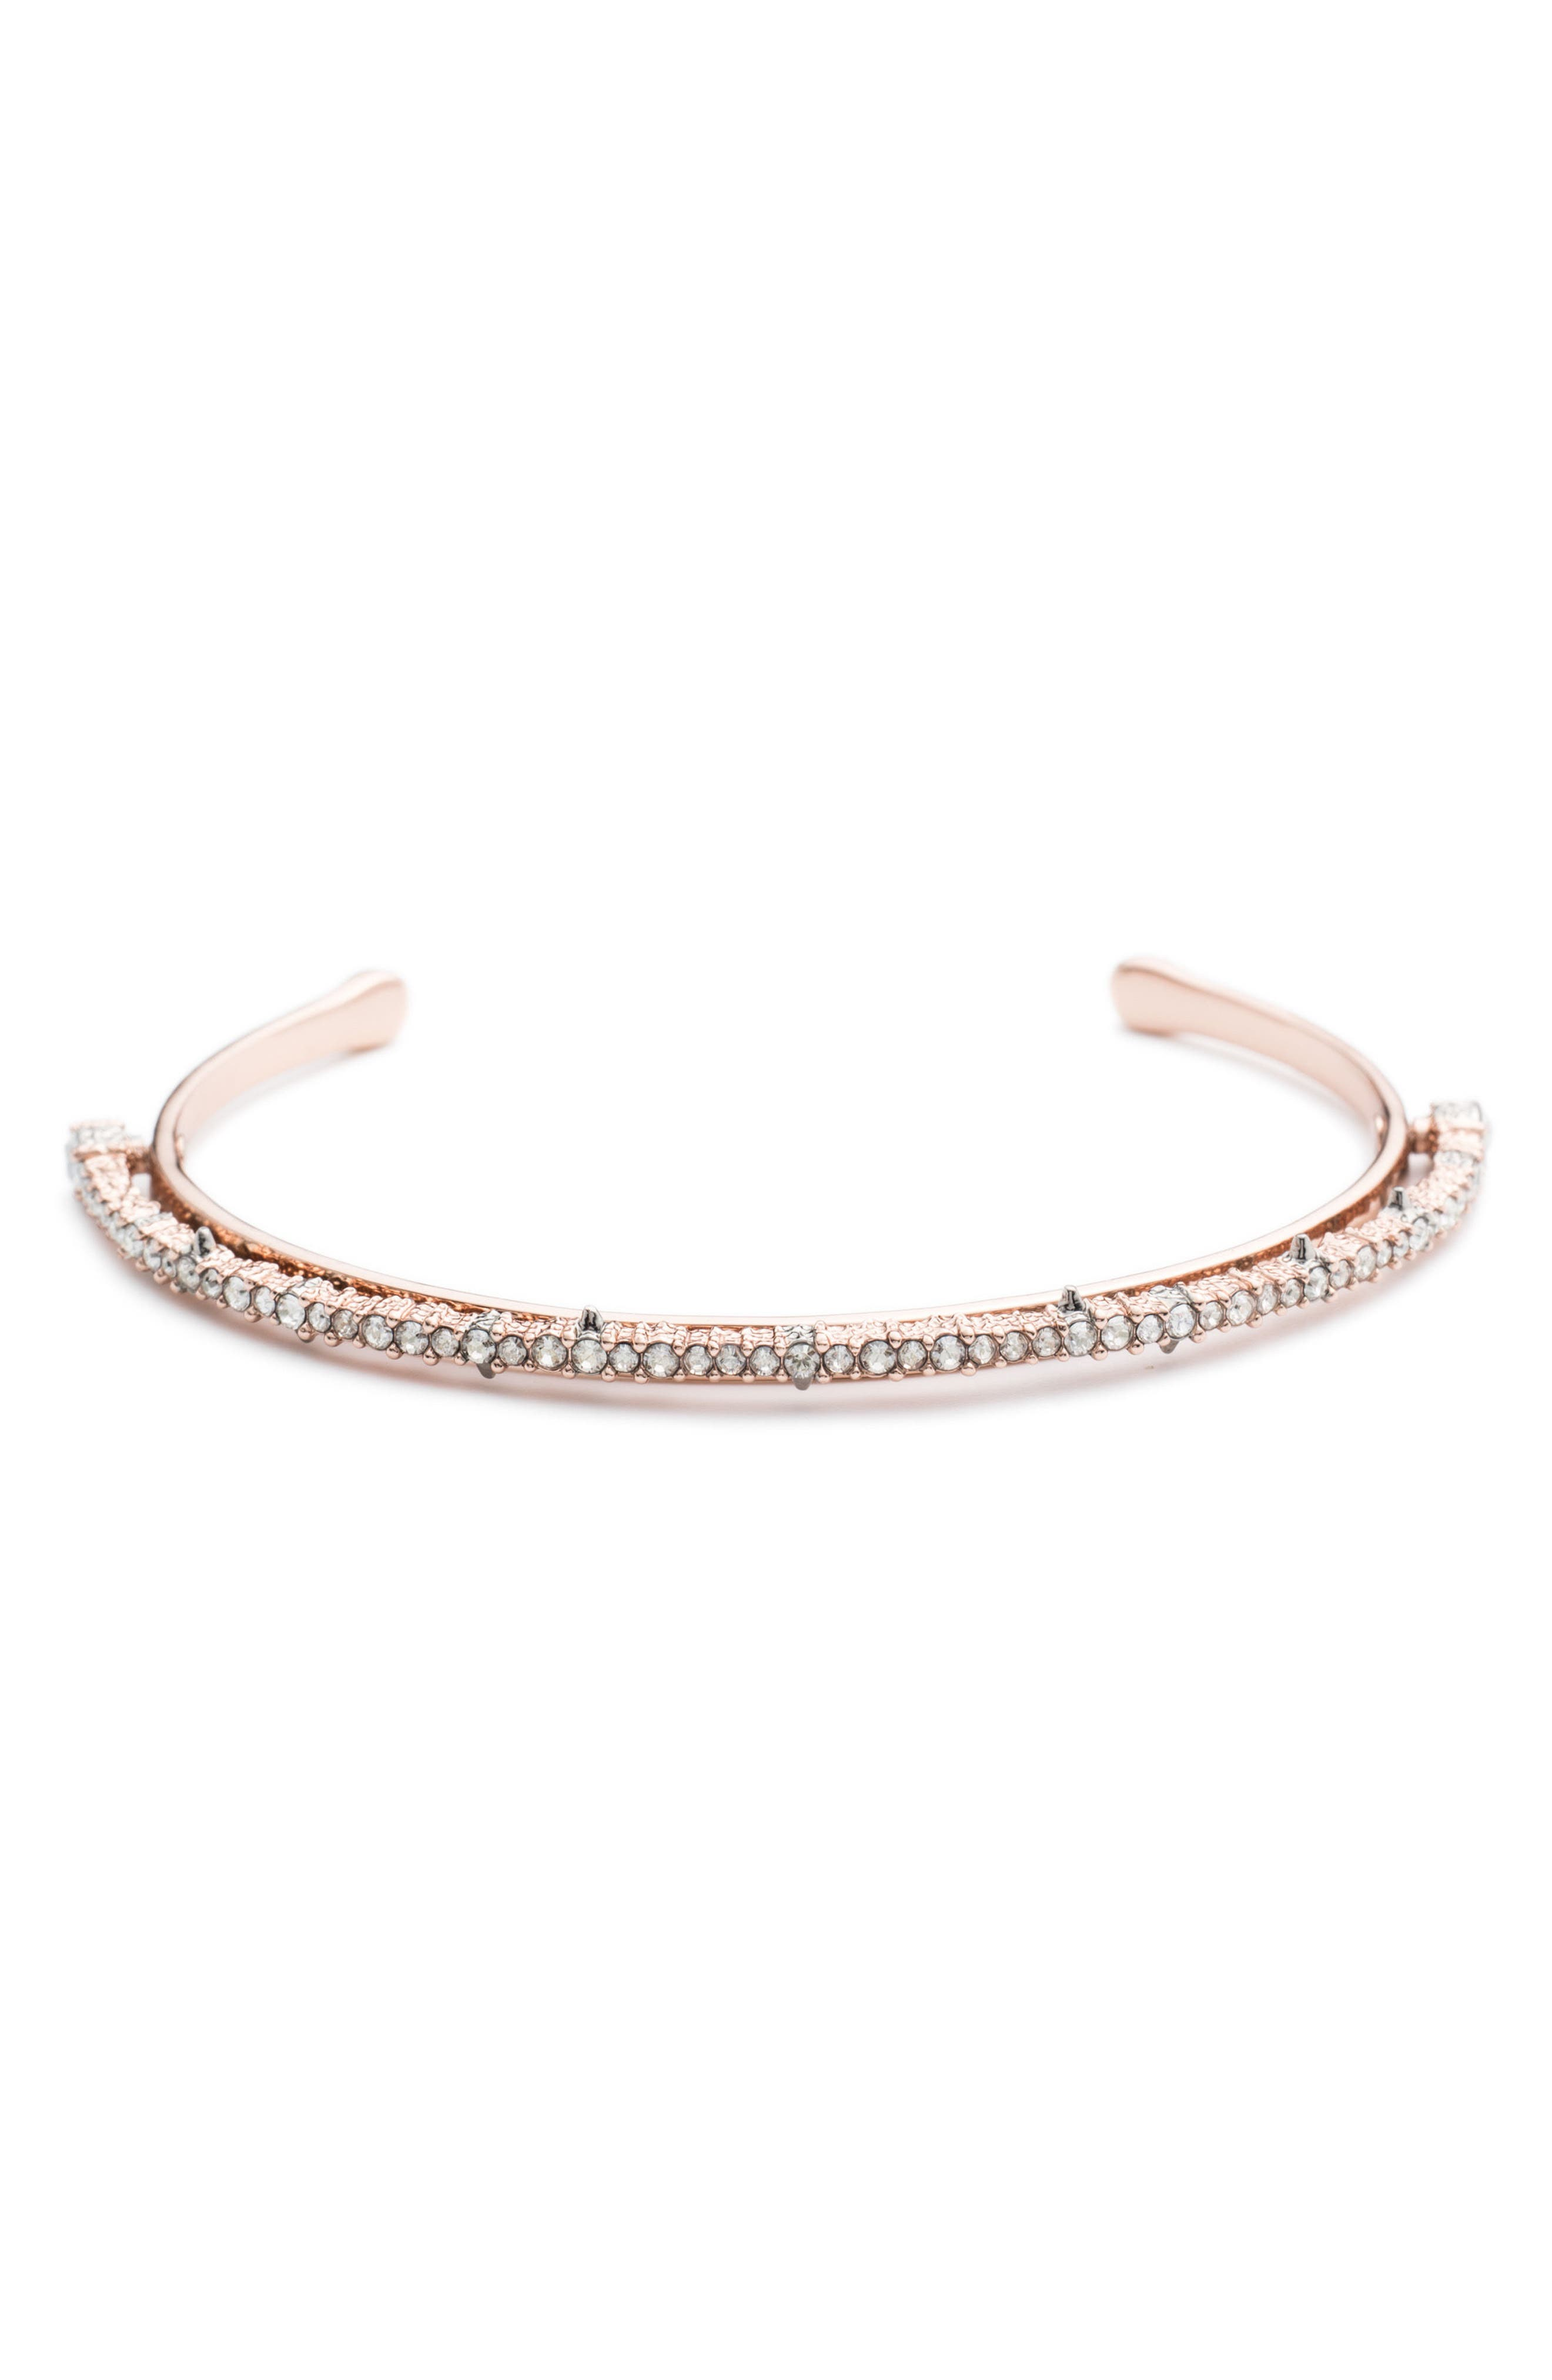 Crystal Lace Orbiting Wrist Cuff,                         Main,                         color, Rose Gold